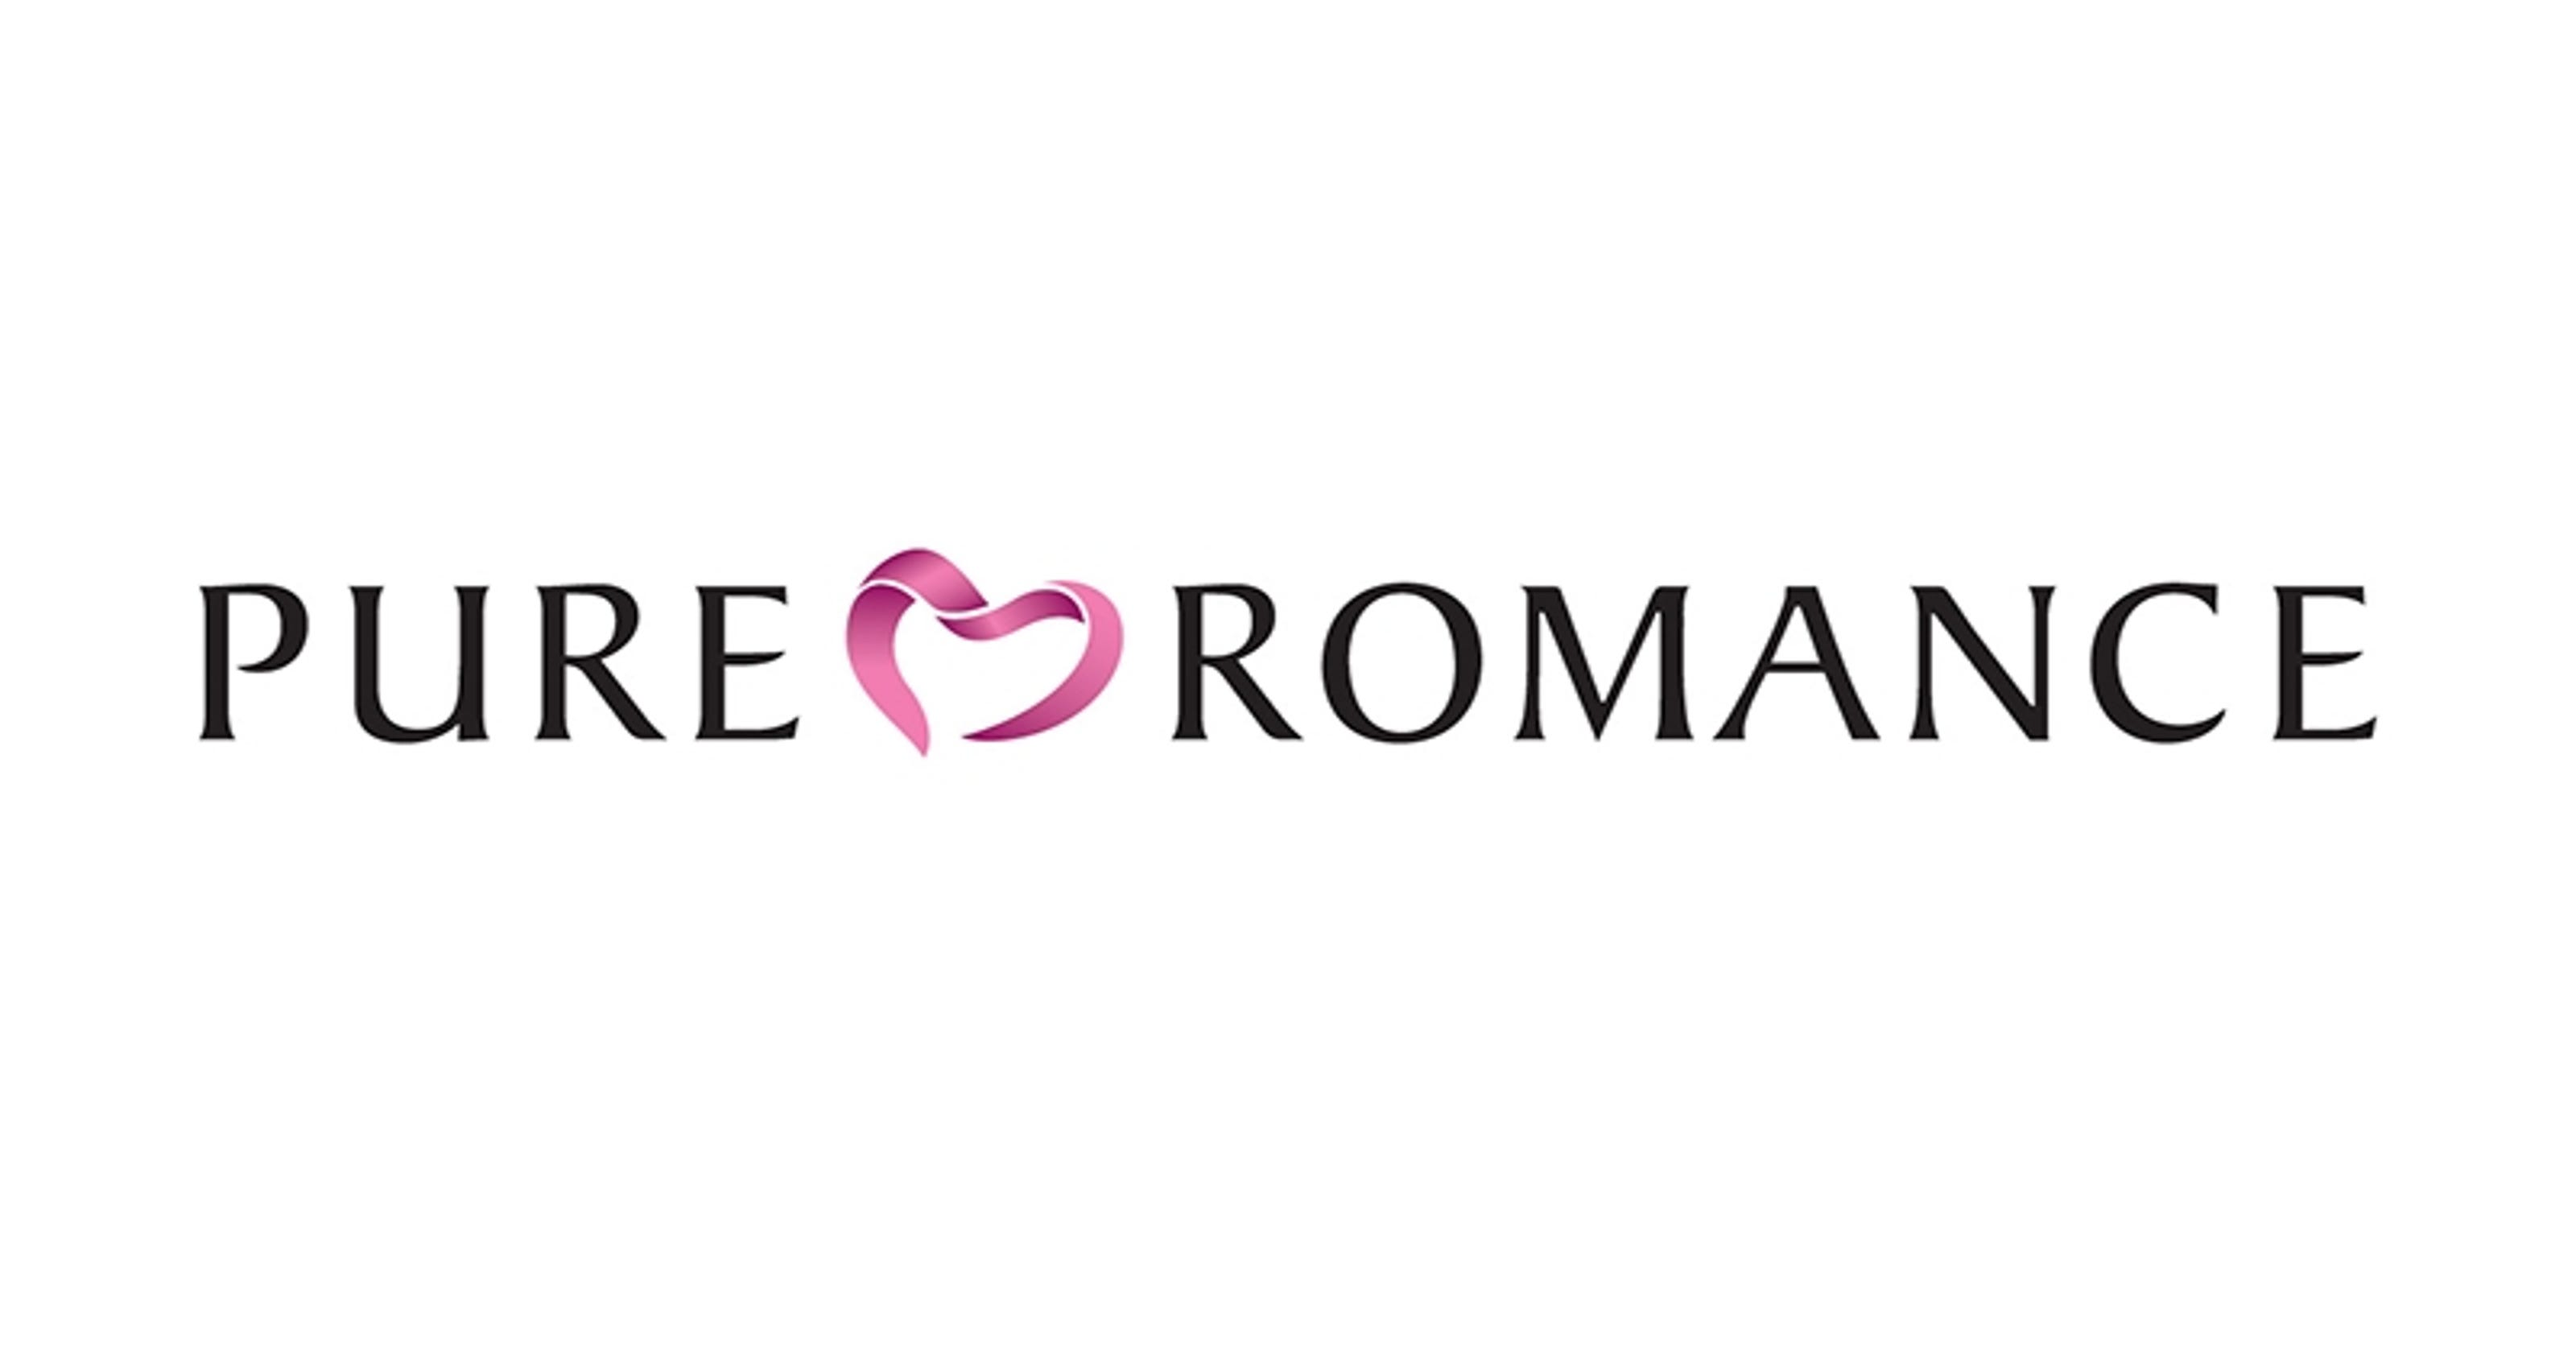 Pure Romance launches luxury product line